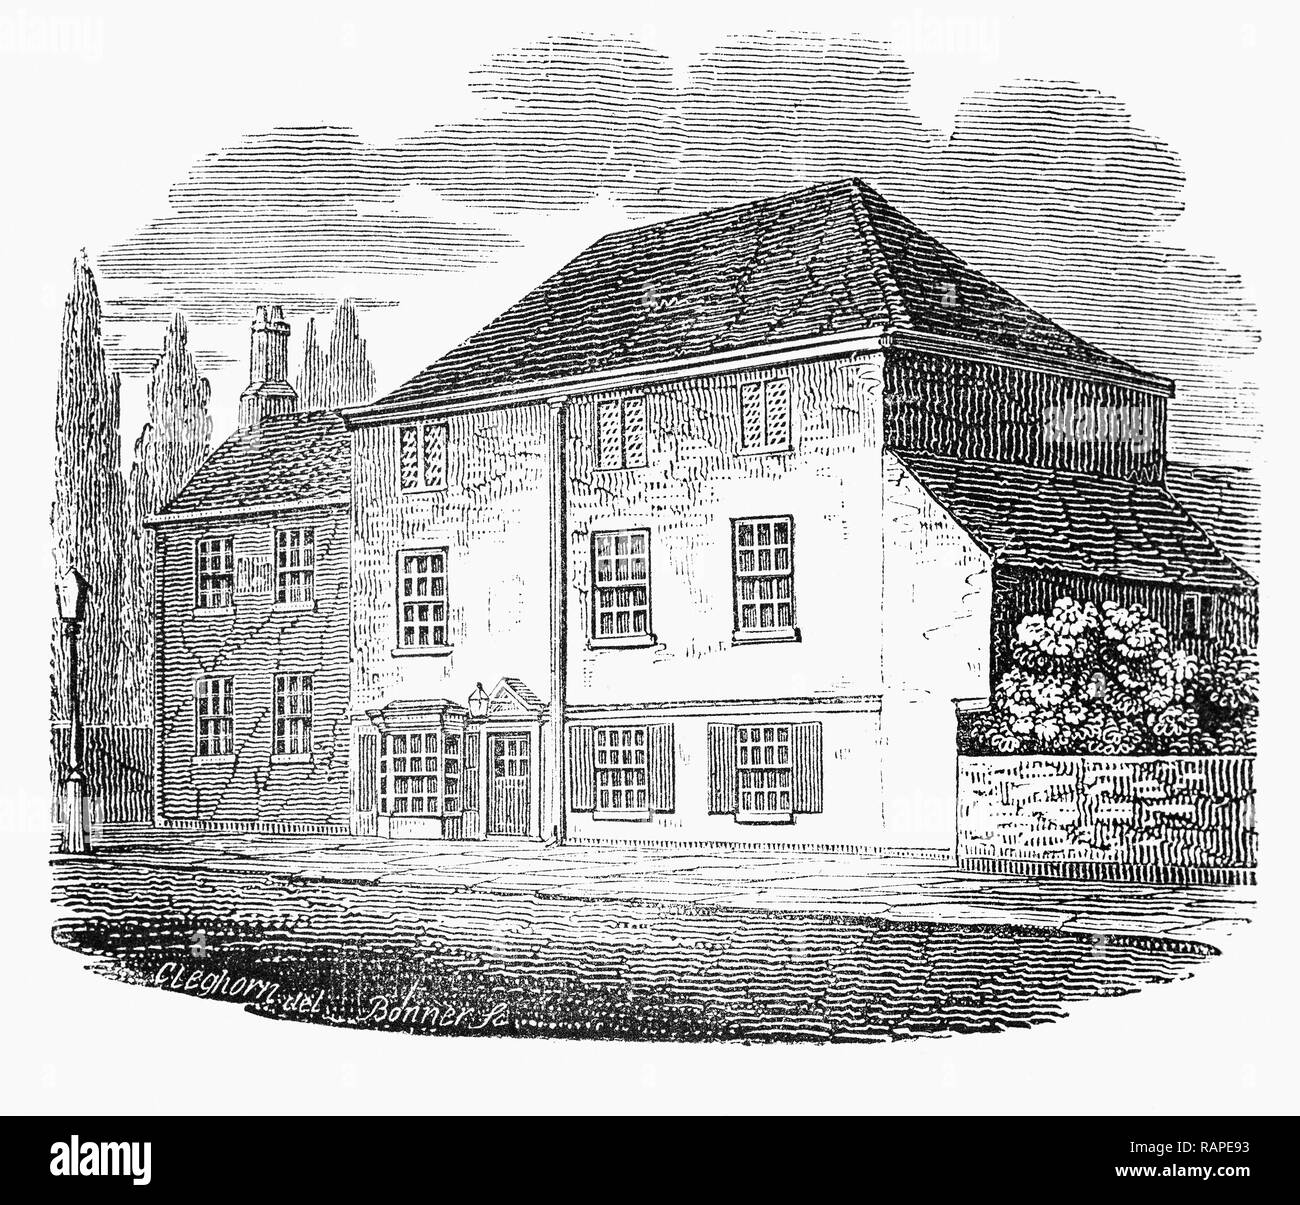 By The Early 17th Century Upper Street In Islington In London England Had A Sprinkling